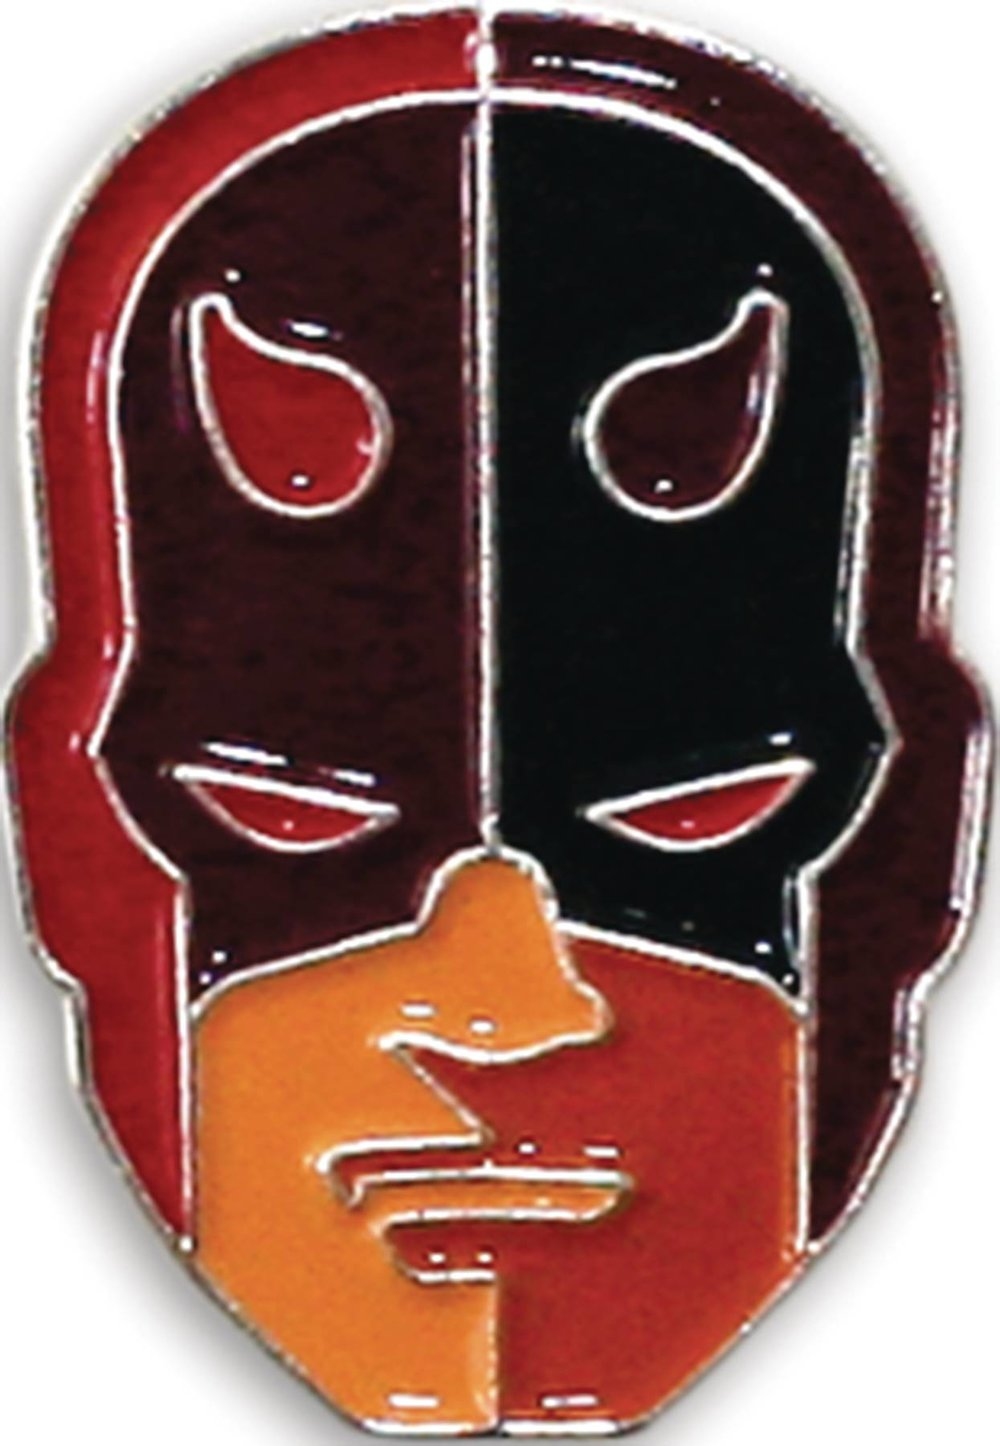 MONDO X MARVEL COMICS DAREDEVIL ENAMEL PIN.jpg